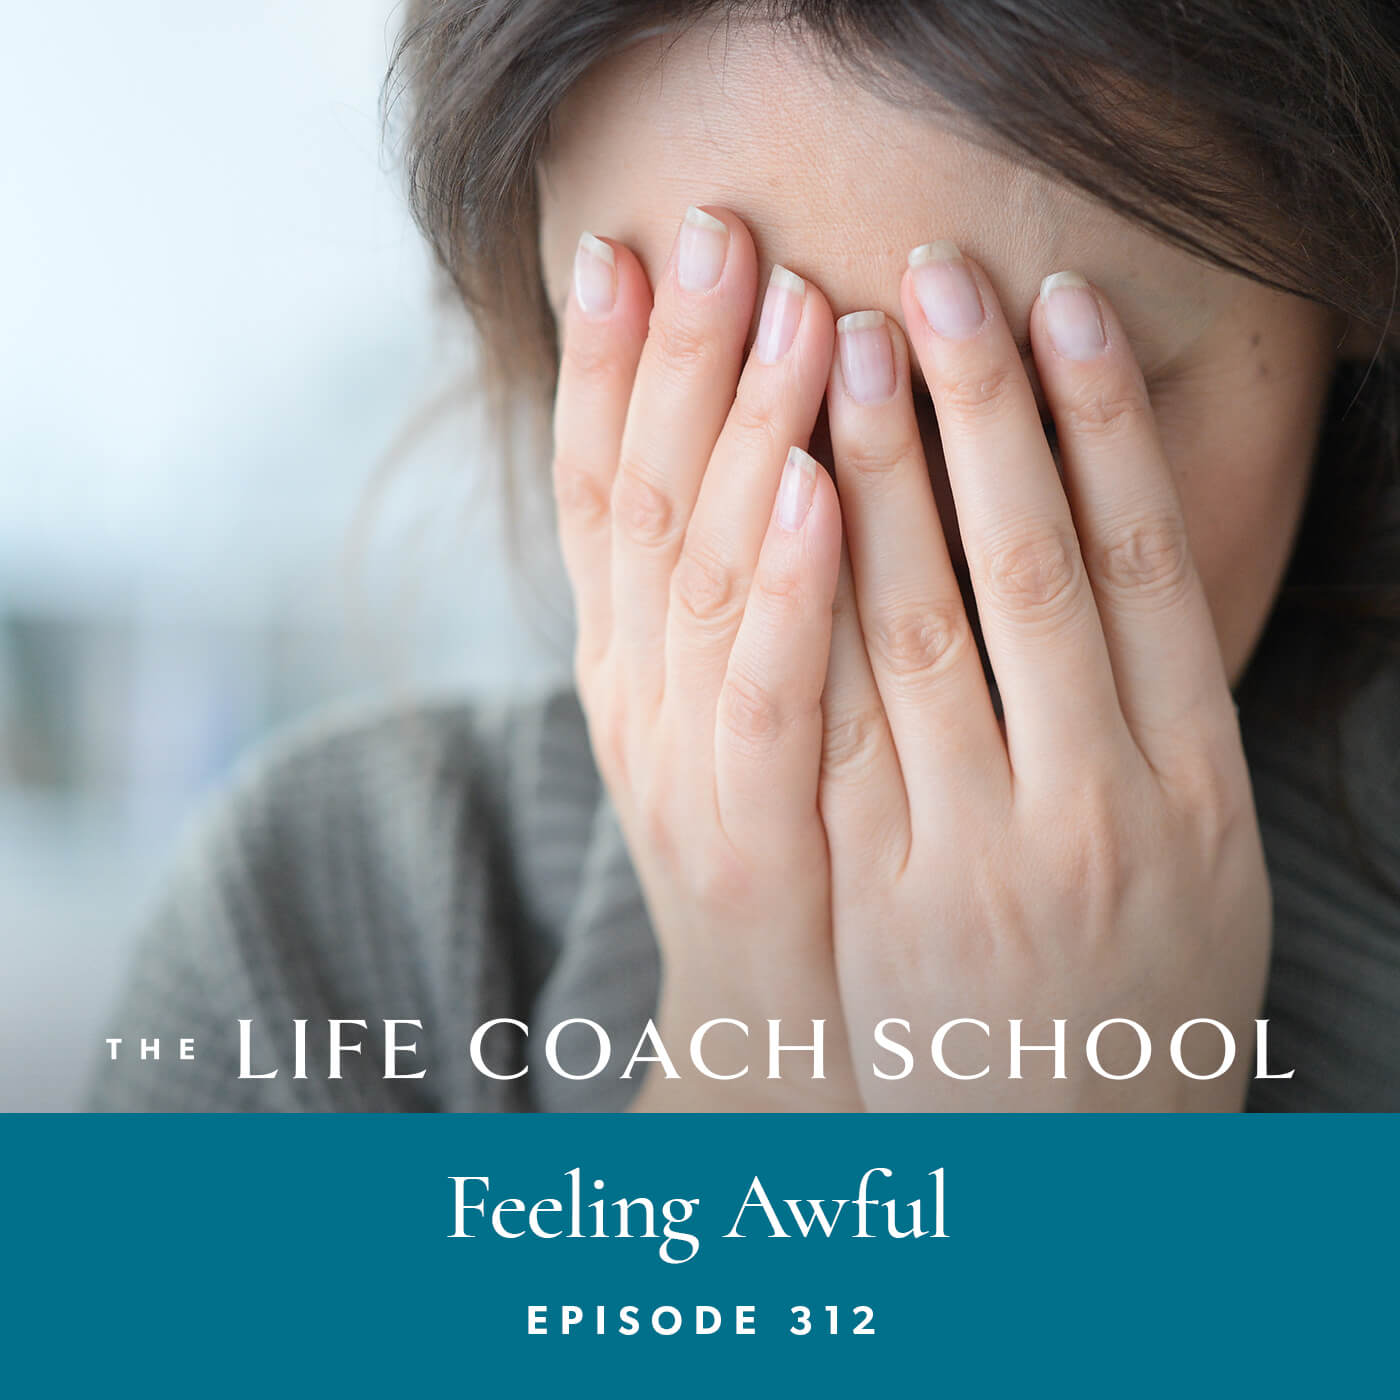 The Life Coach School Podcast with Brooke Castillo | Episode 312 | Feeling Awful